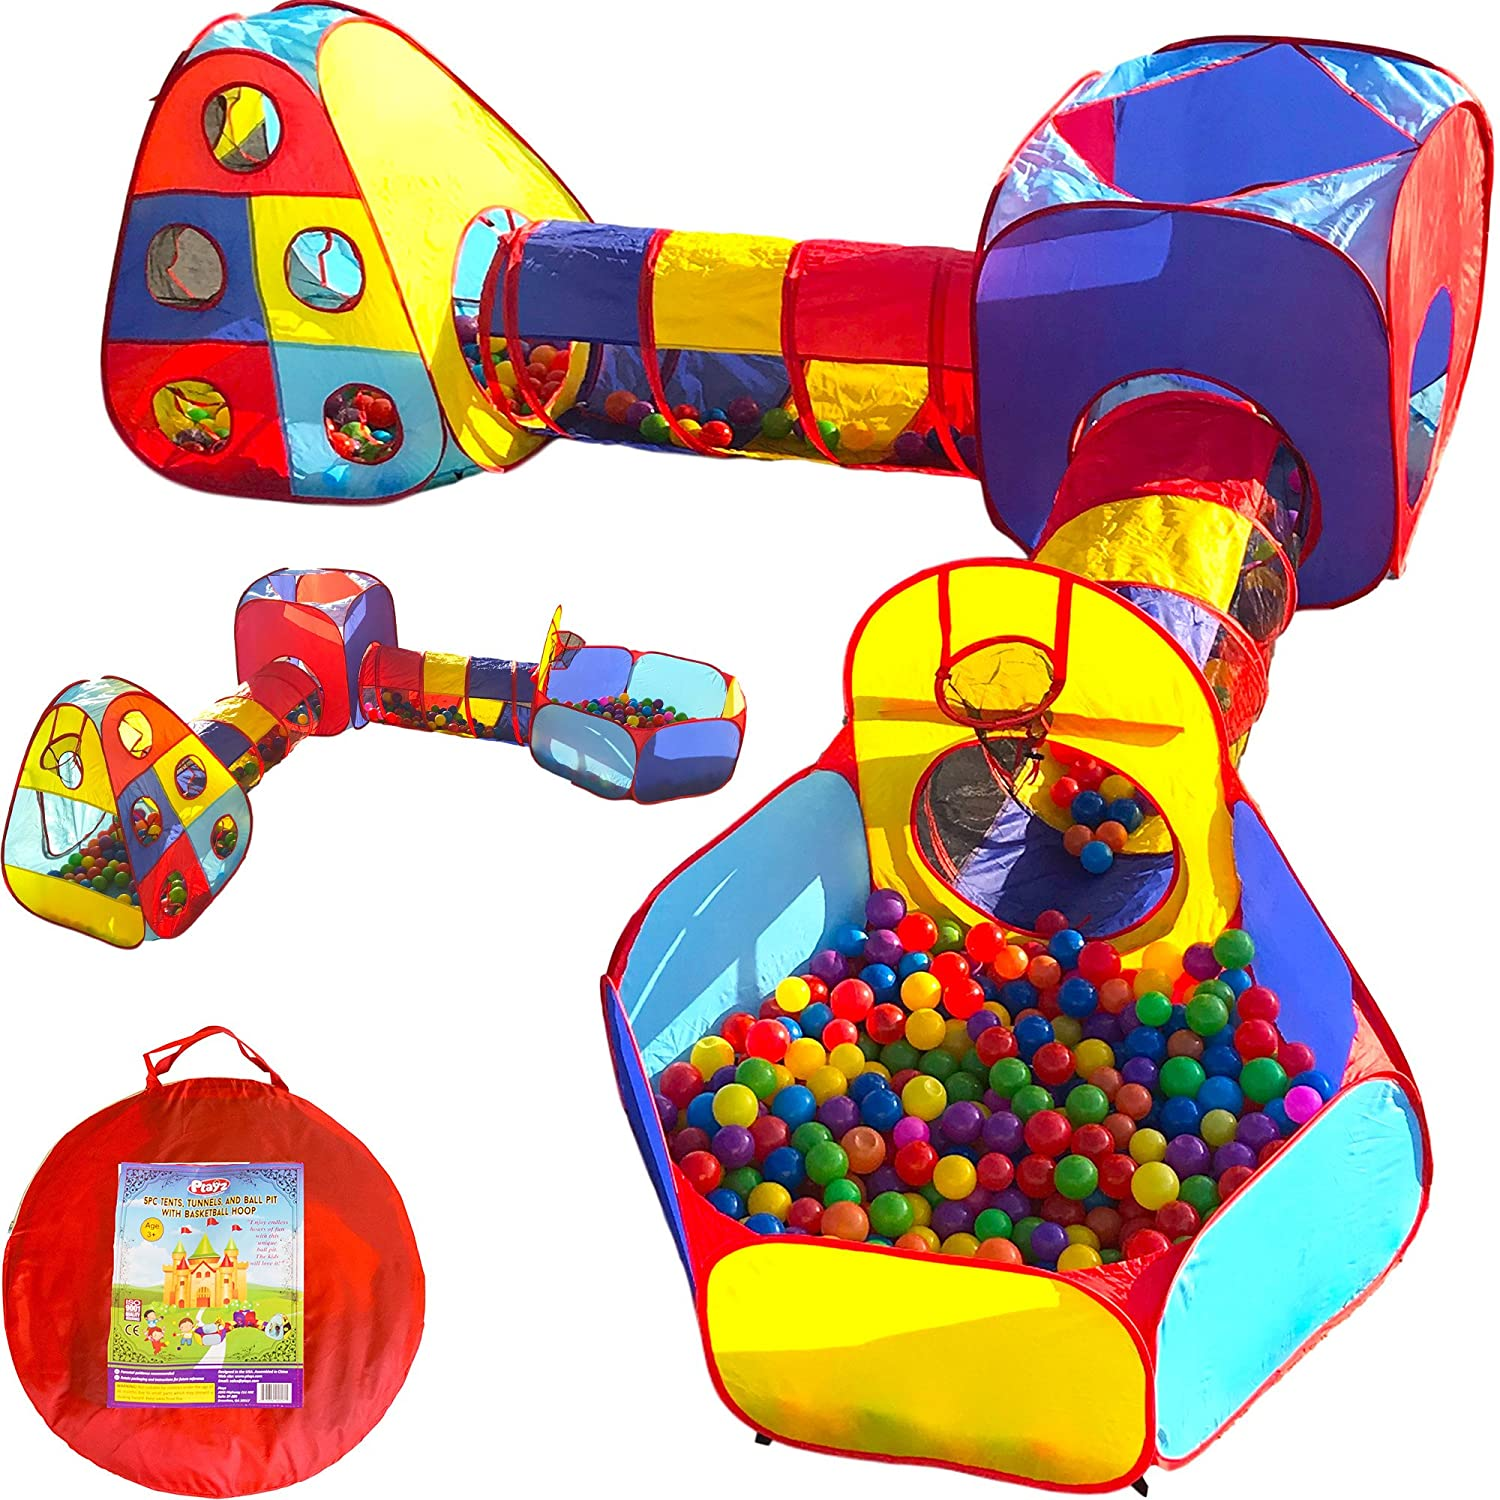 Playz 5pc Kids Playhouse Jungle Gym w/ Pop Up Tents, Tunnels, and Basketball Pit for Boys, Girls, Babies, and Toddlers with Zipper Storage Case for Indoor & Outdoor Use